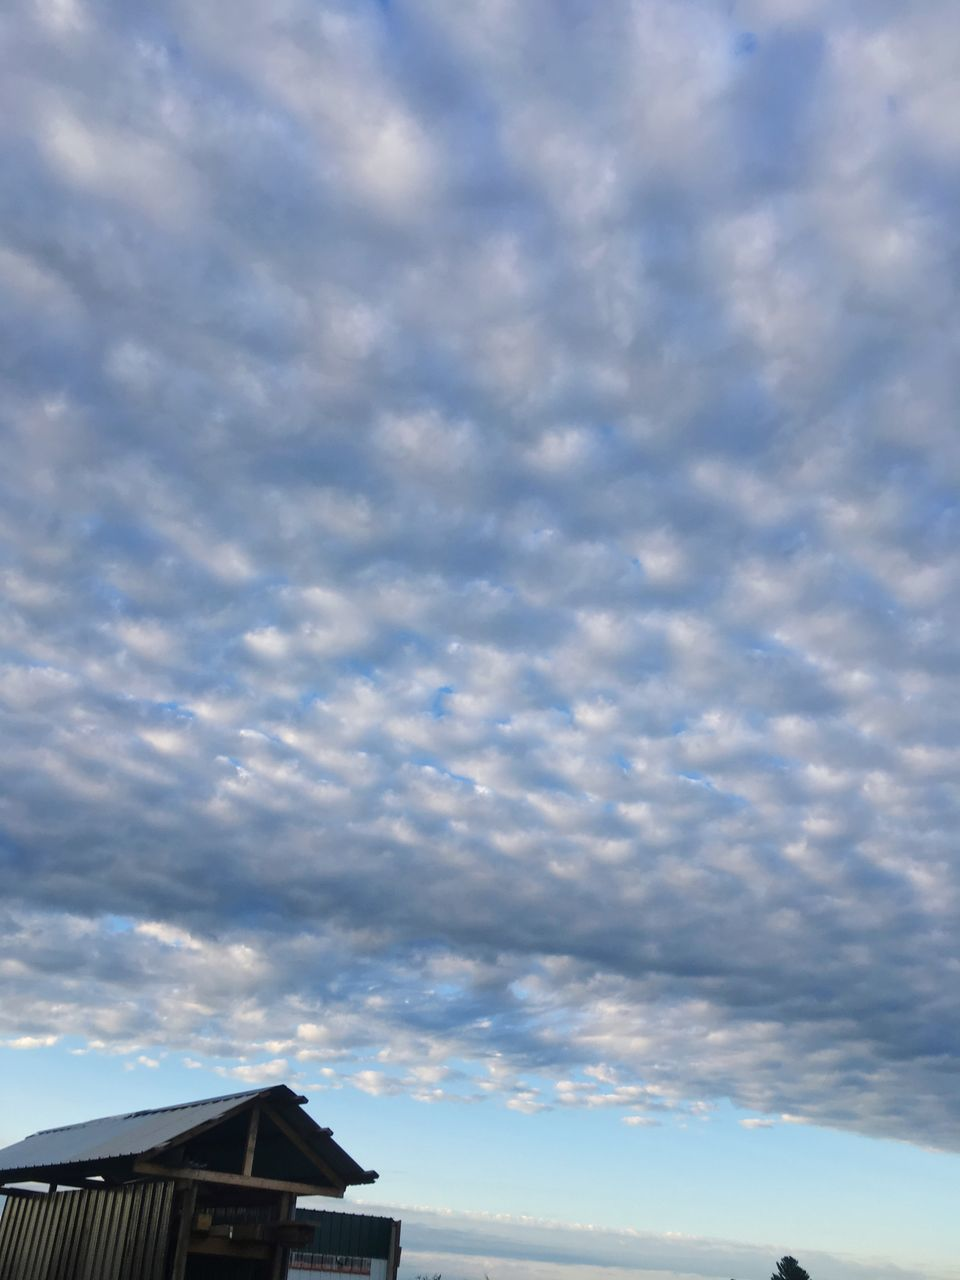 cloud - sky, sky, architecture, built structure, building exterior, nature, building, no people, low angle view, house, beauty in nature, outdoors, day, tranquility, scenics - nature, roof, blue, sunlight, overcast